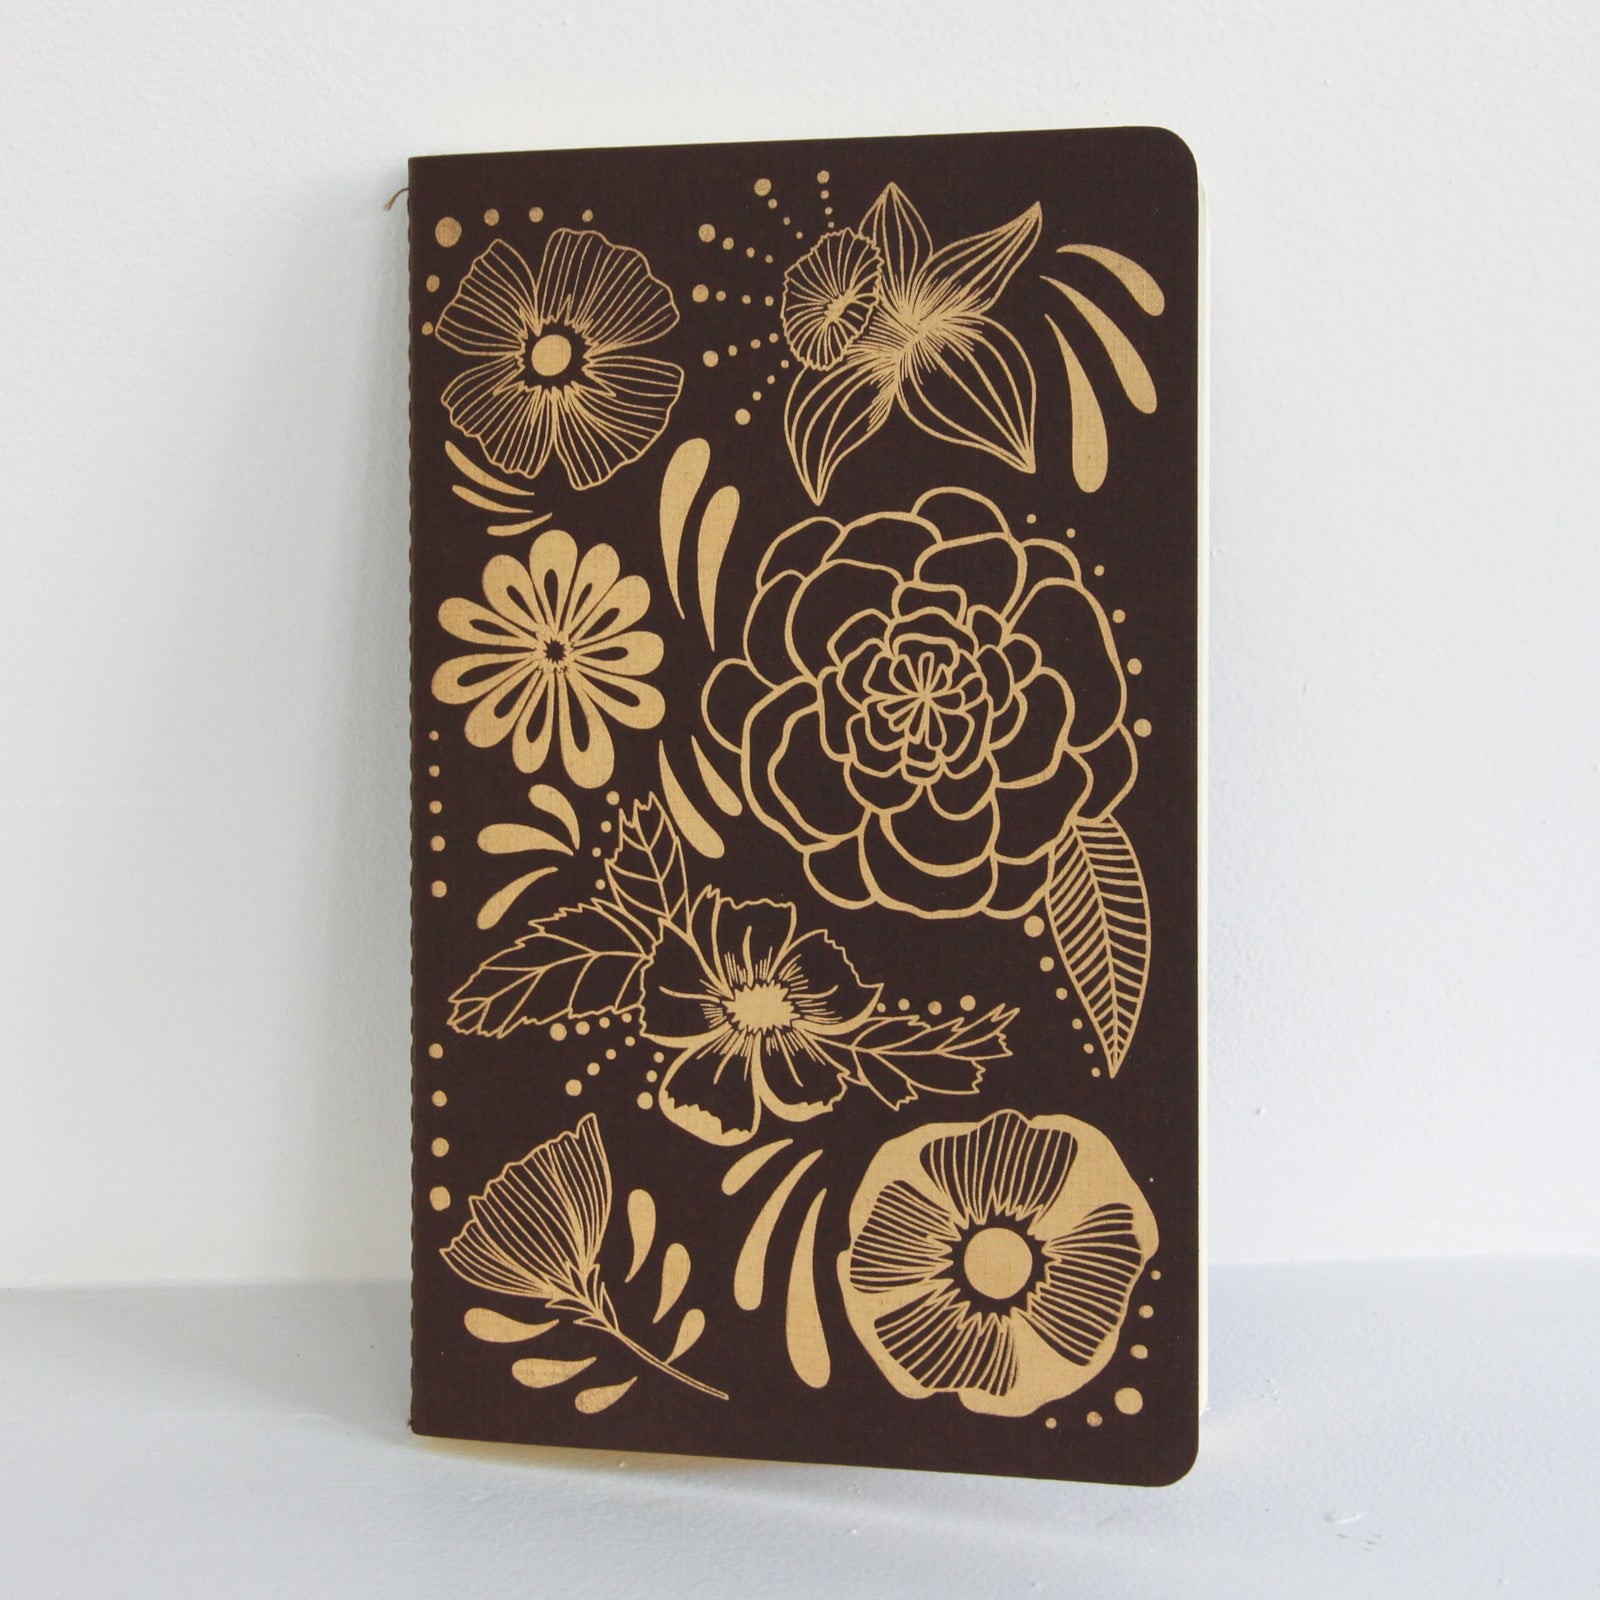 Flower Power Notebook | Native Bear -Leela Hoehn | Augusta, GA at Sustain - Gallery and Shop - Chicago, IL